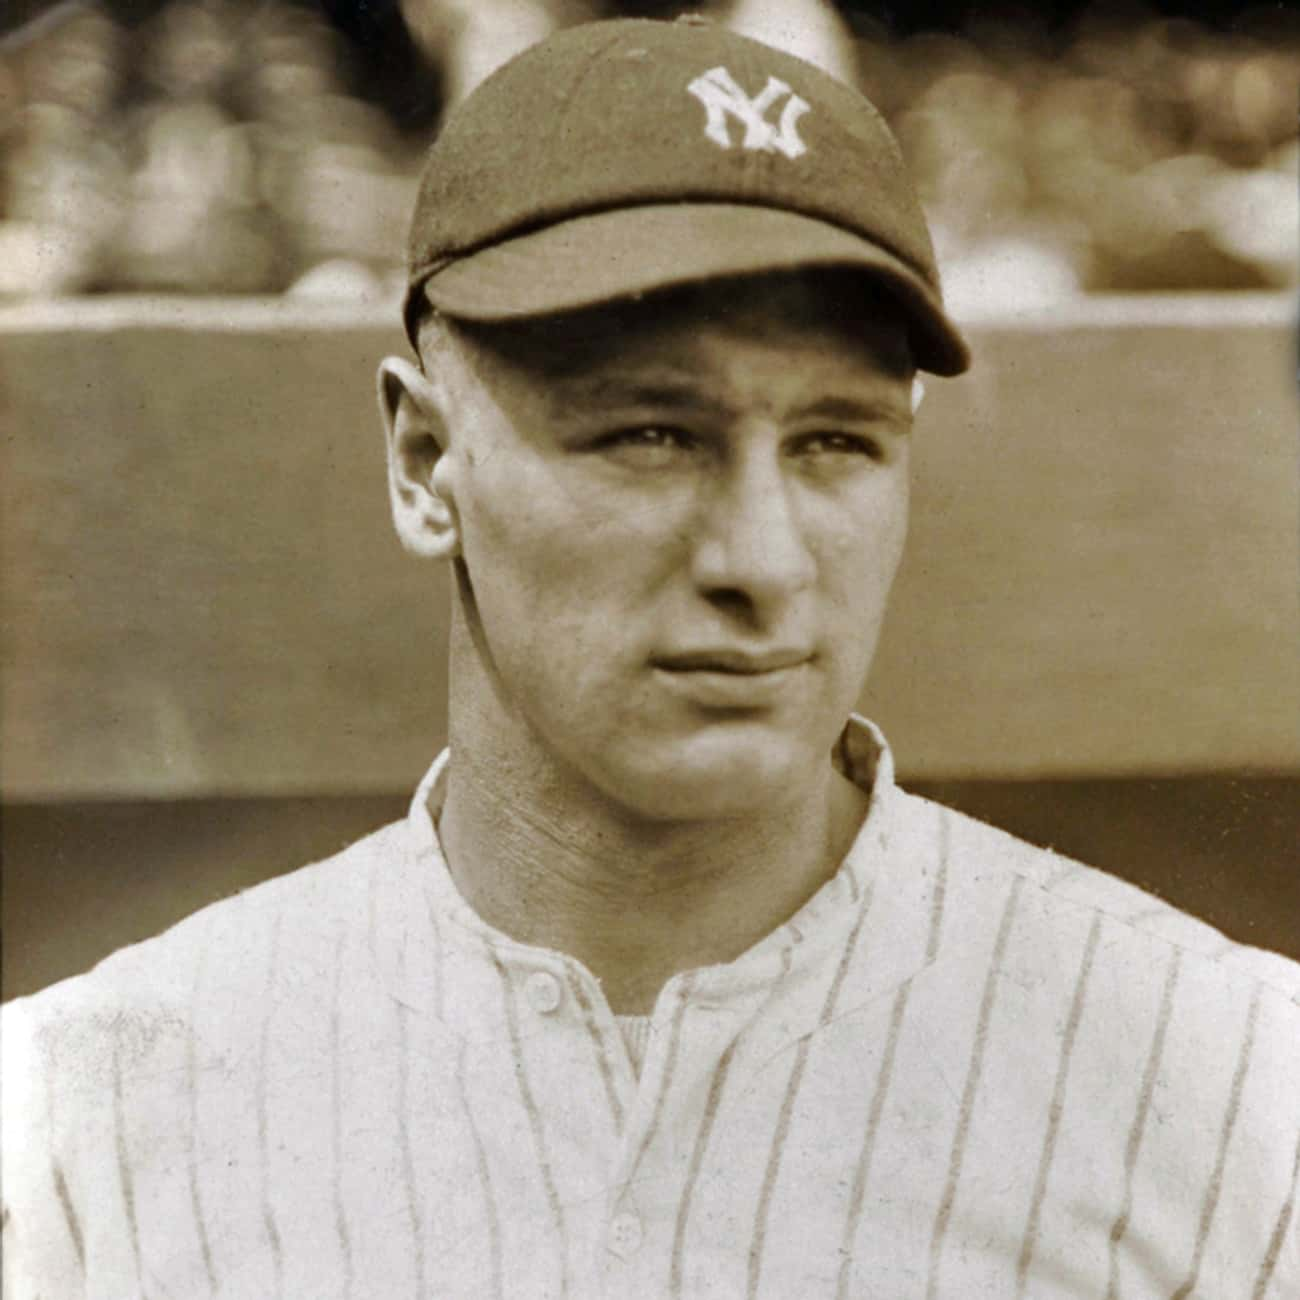 Lou Gehrig is listed (or ranked) 1 on the list MLB Players Whose Careers Ended Too Soon